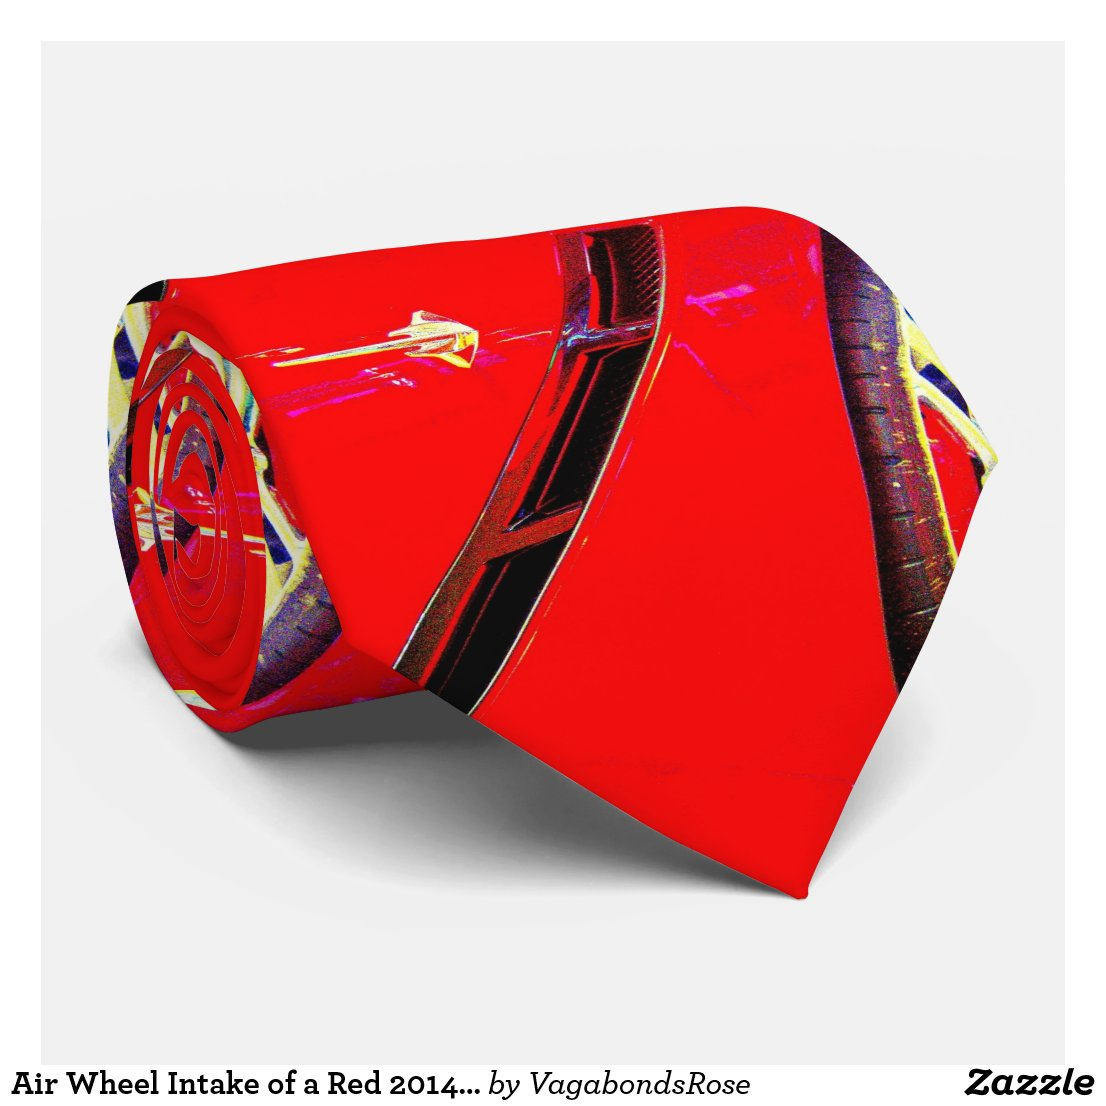 Air Wheel Intake of a Red 2014 Corvette Stingray Neck Tie